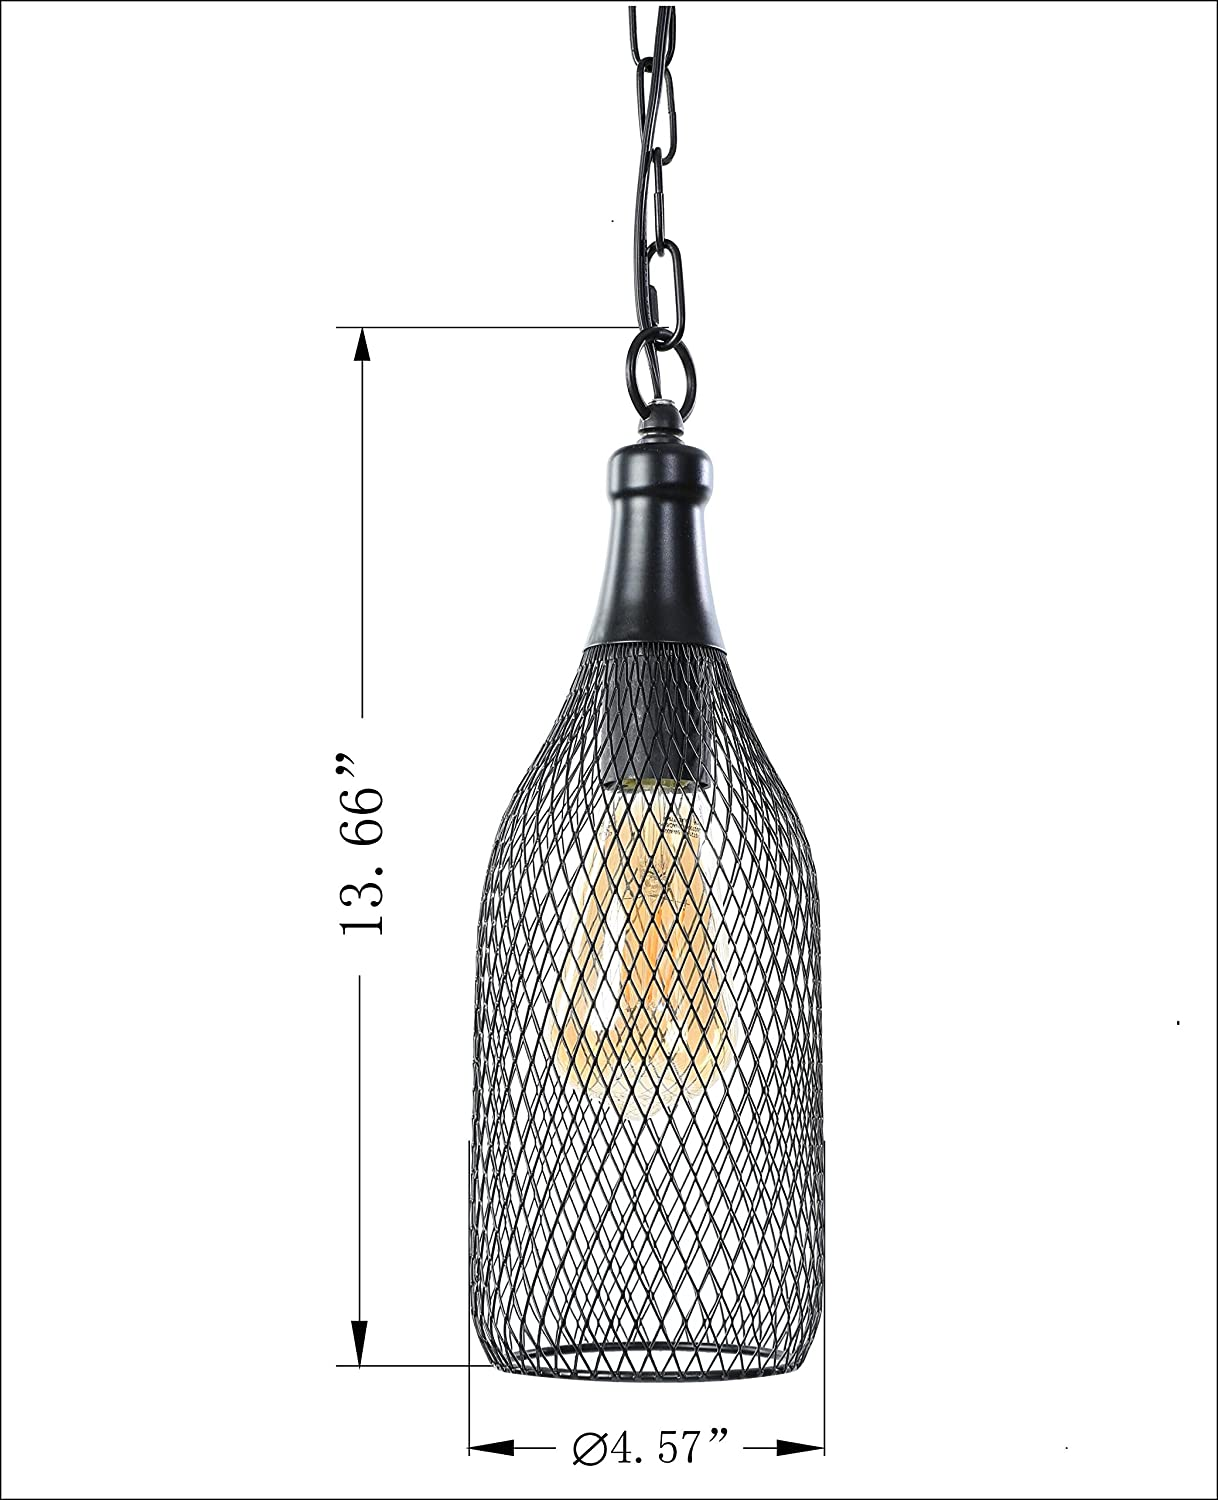 Metal Construction with Black Finish E26//E27 Medium Base LIT-PaTH Pendant Light Hanging Lantern Lighting Fixture for Kitchen and Dining Room Bulb not Included